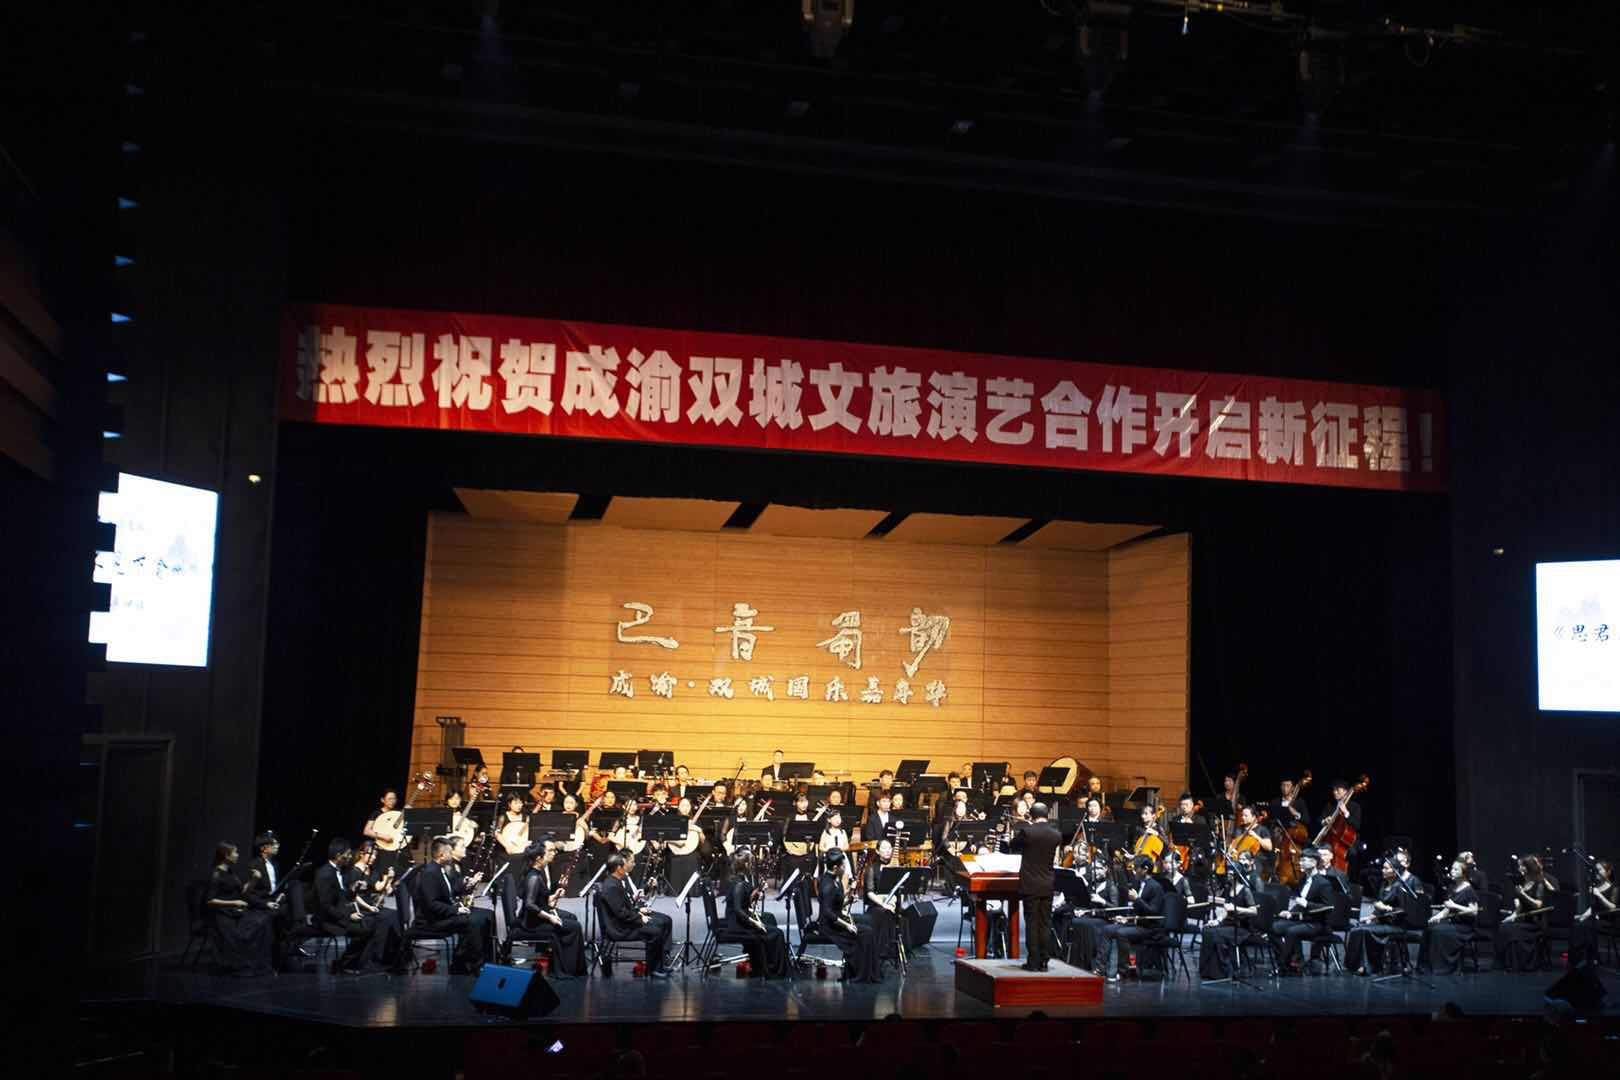 The traditional orchestral concert Ba Yin Shu Yun — Traditional Chinese Music Carnival was held in Chongqing Guotai Arts Center.